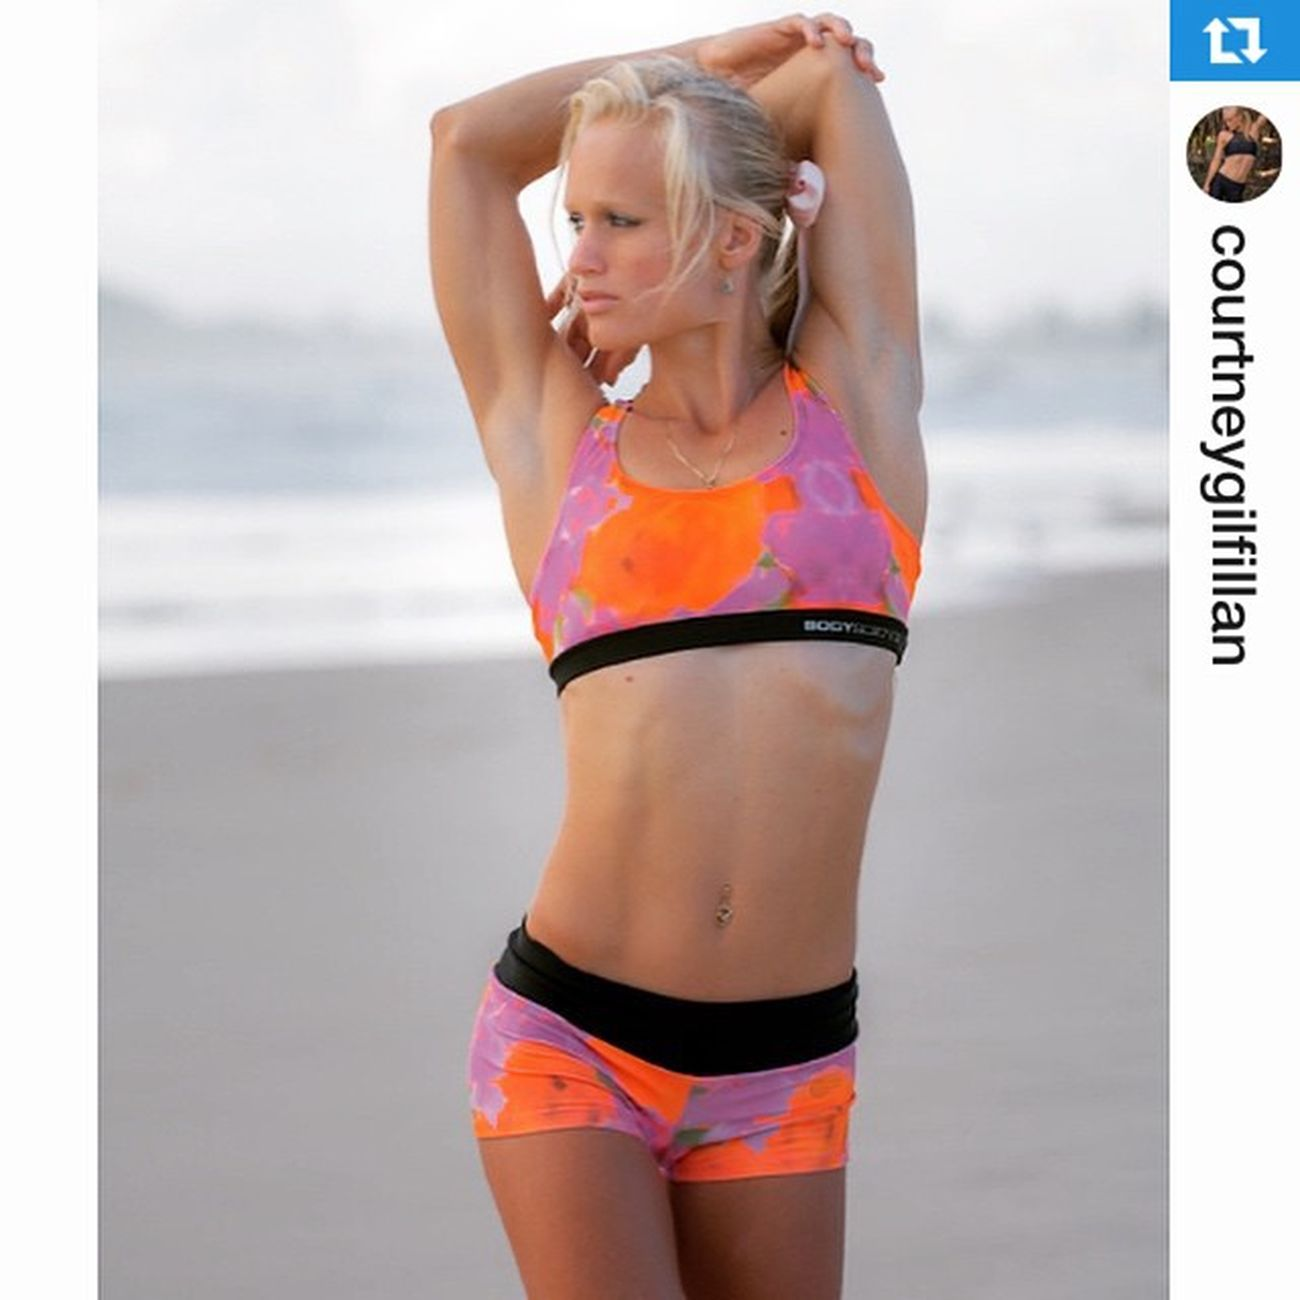 Repost from @courtneygilfillan taken during our shoot this week .・・・Love spending time exercising in my @bodyscience inflorescence crop top and shorts which are available online at www.bodyscience.com.au Activewear BSC Running Fitness Beachwalks PostRecovery Stretching Yoga Pilates GirlsLove2feelGood Excercise Comfort Fashion Athlete Athletes Beach Triathlete Triathletes Healthybod DressItWell LookGoodWhileExcercising @jkdimagery GoldcoastAthletes Currumbinbeach